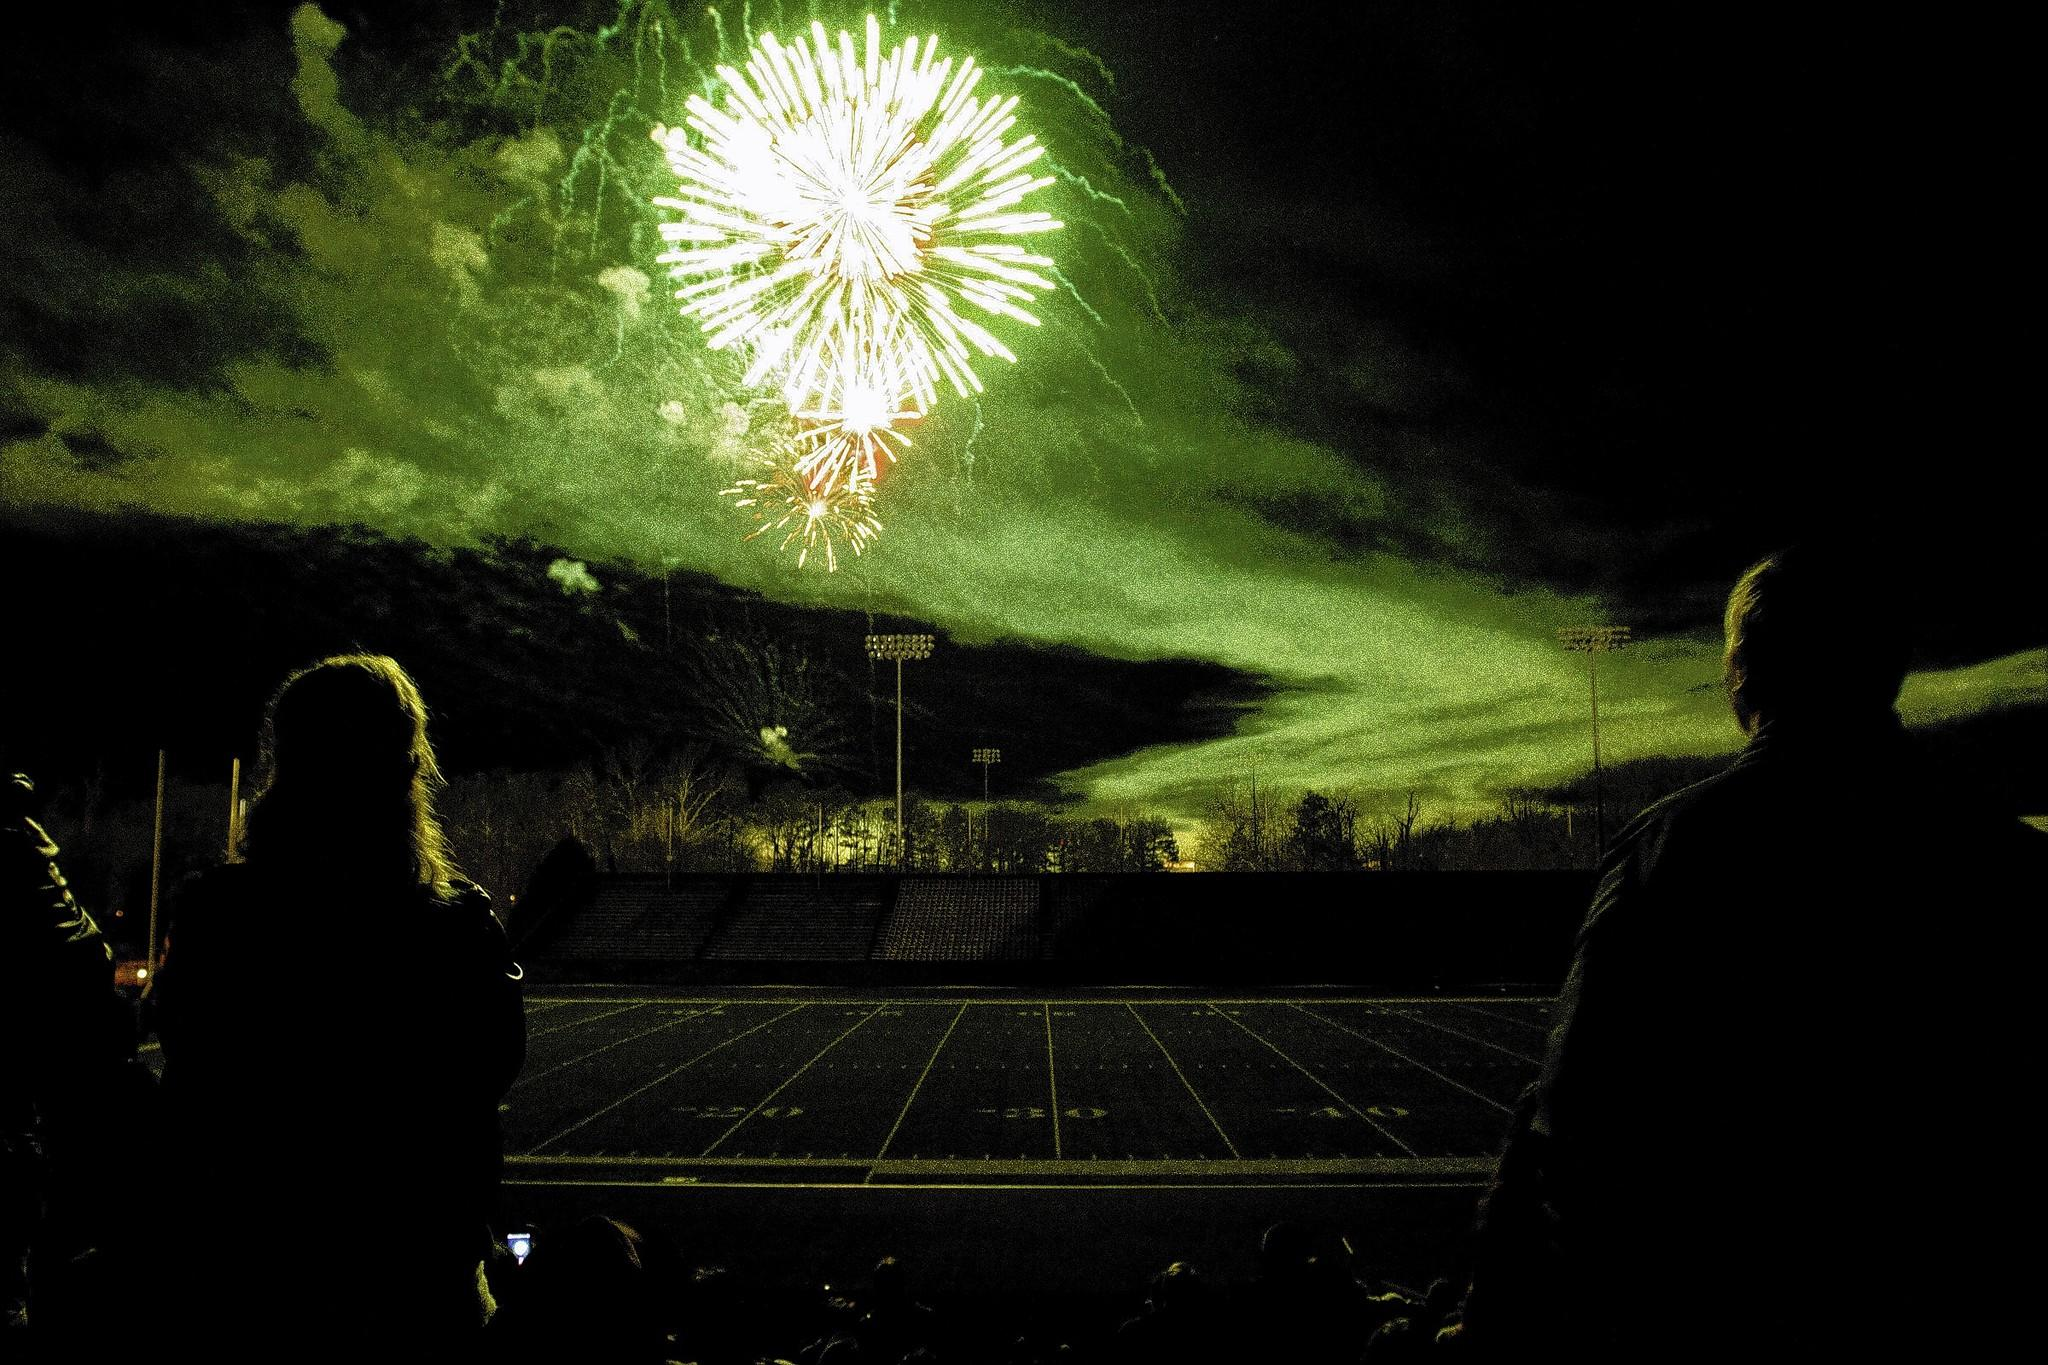 Attendees of FIrst Night Williamsburg 2012 ring in the New Year with a fireworks display at Zable Stadium.